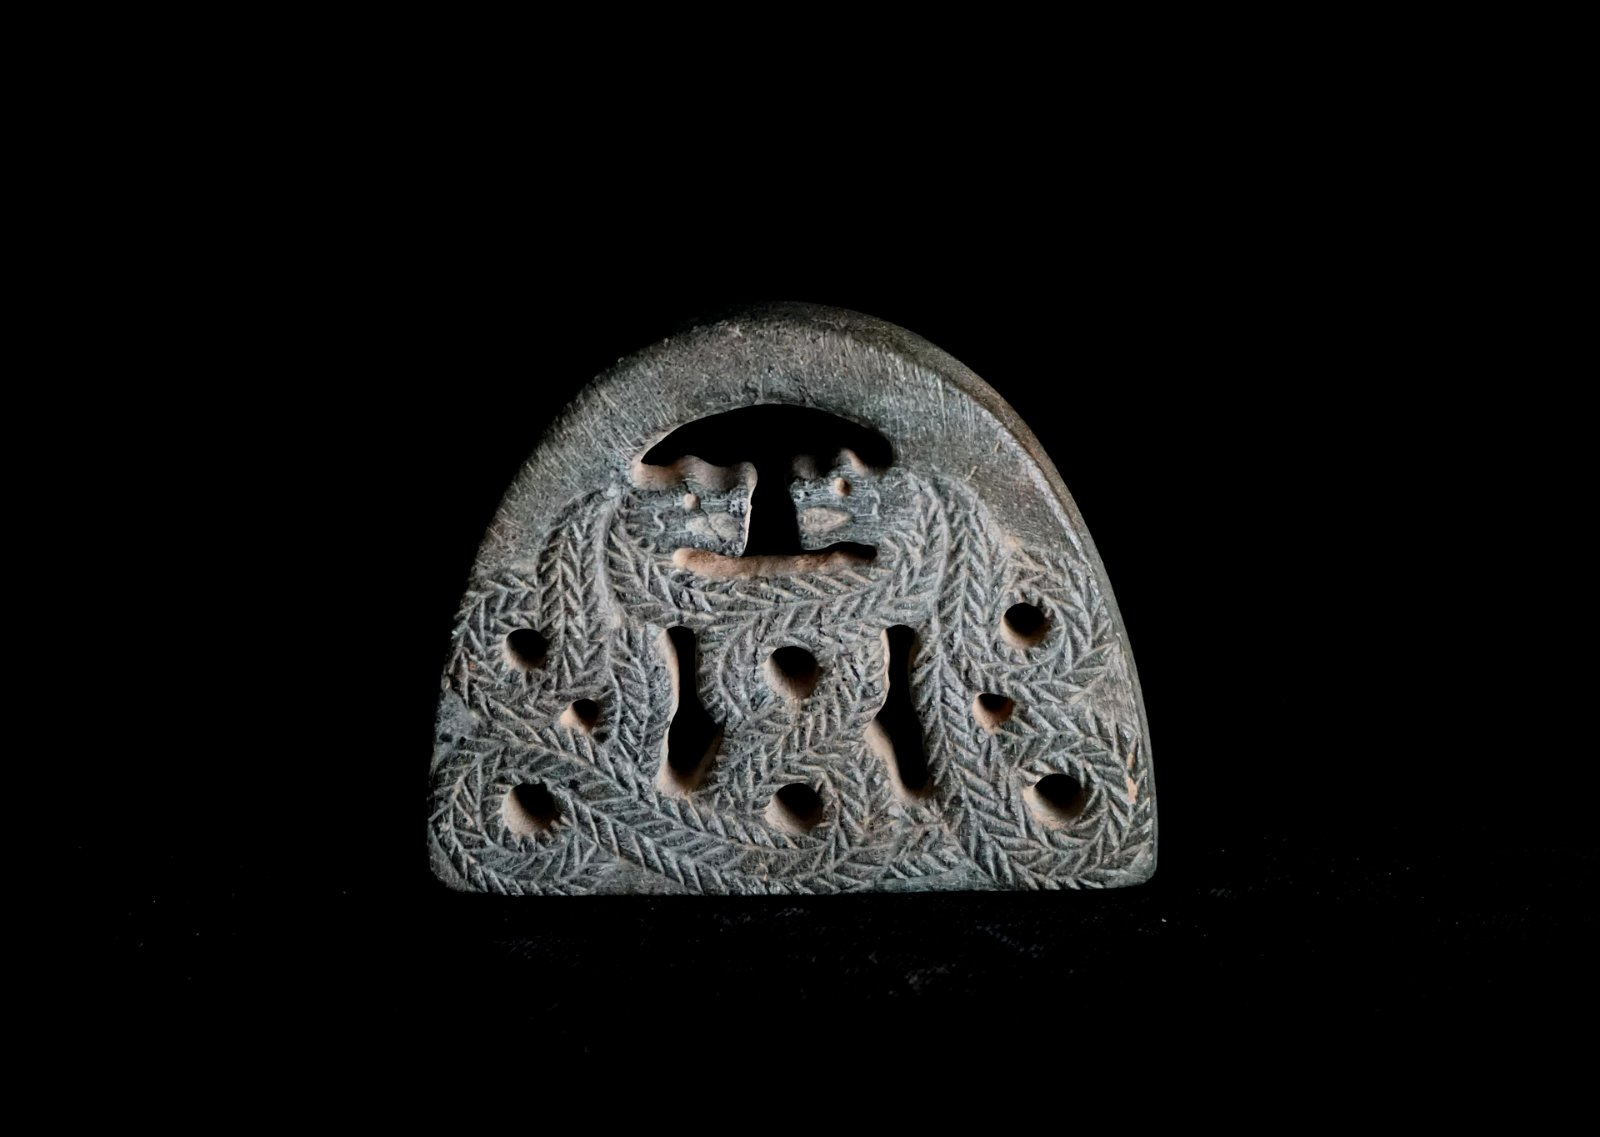 A very Nice and Rare Bactrian / Near Eastern Openwork